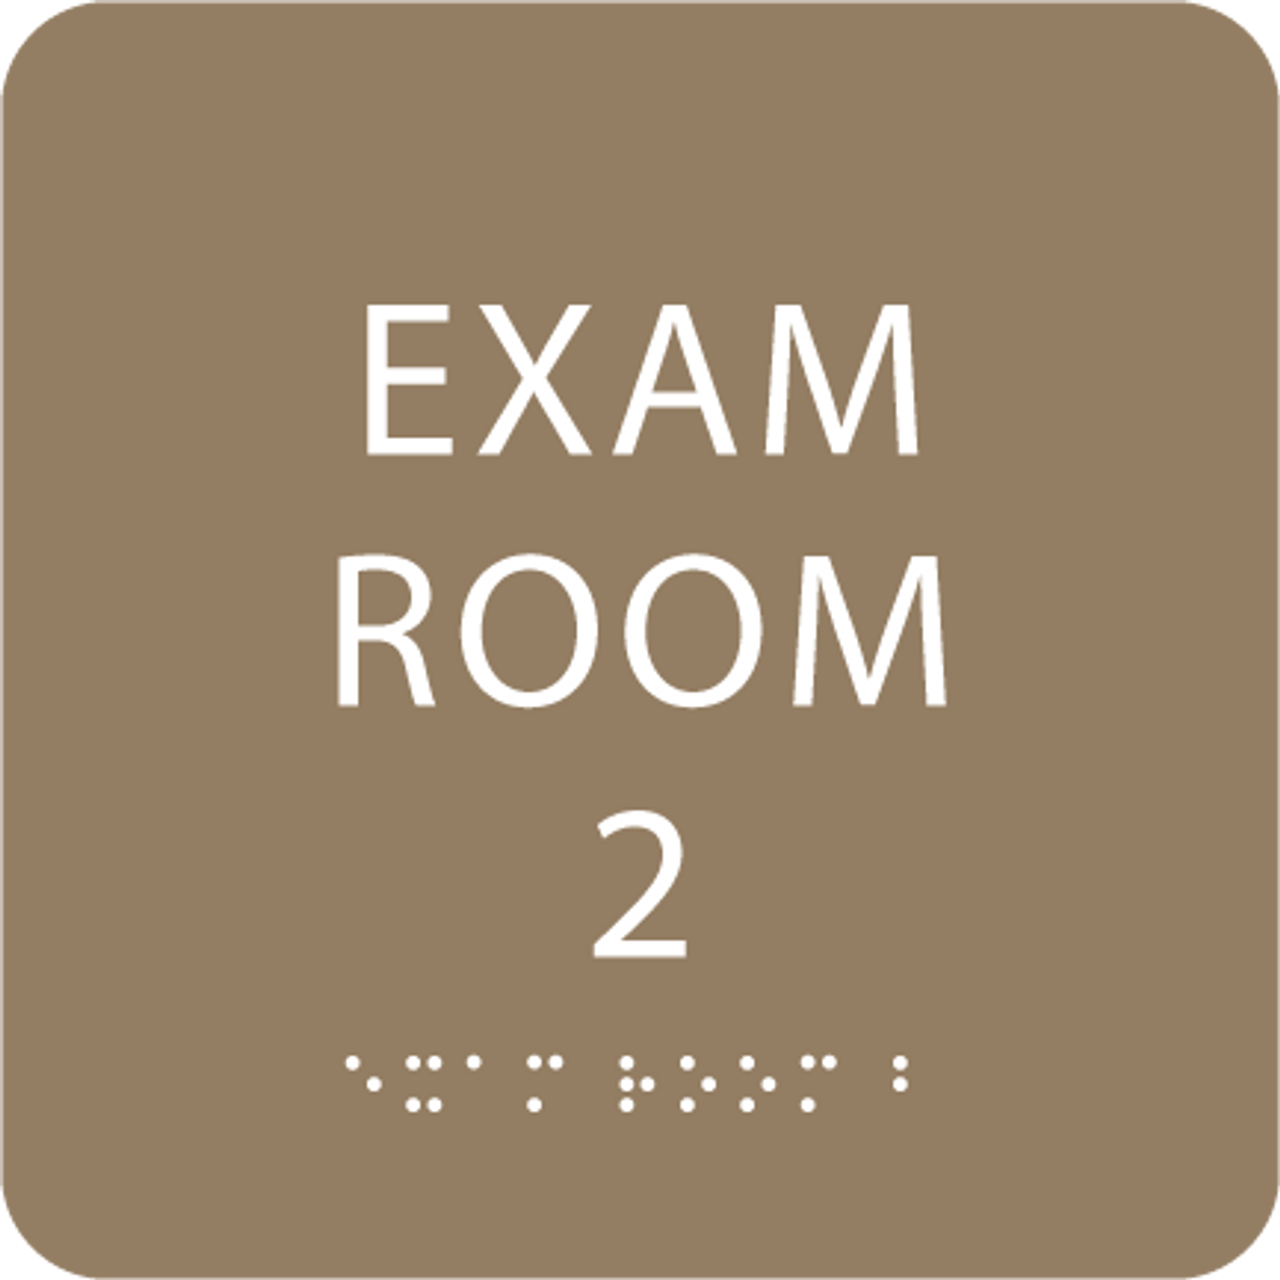 Light Brown ADA Exam Room 2 Sign with Braille